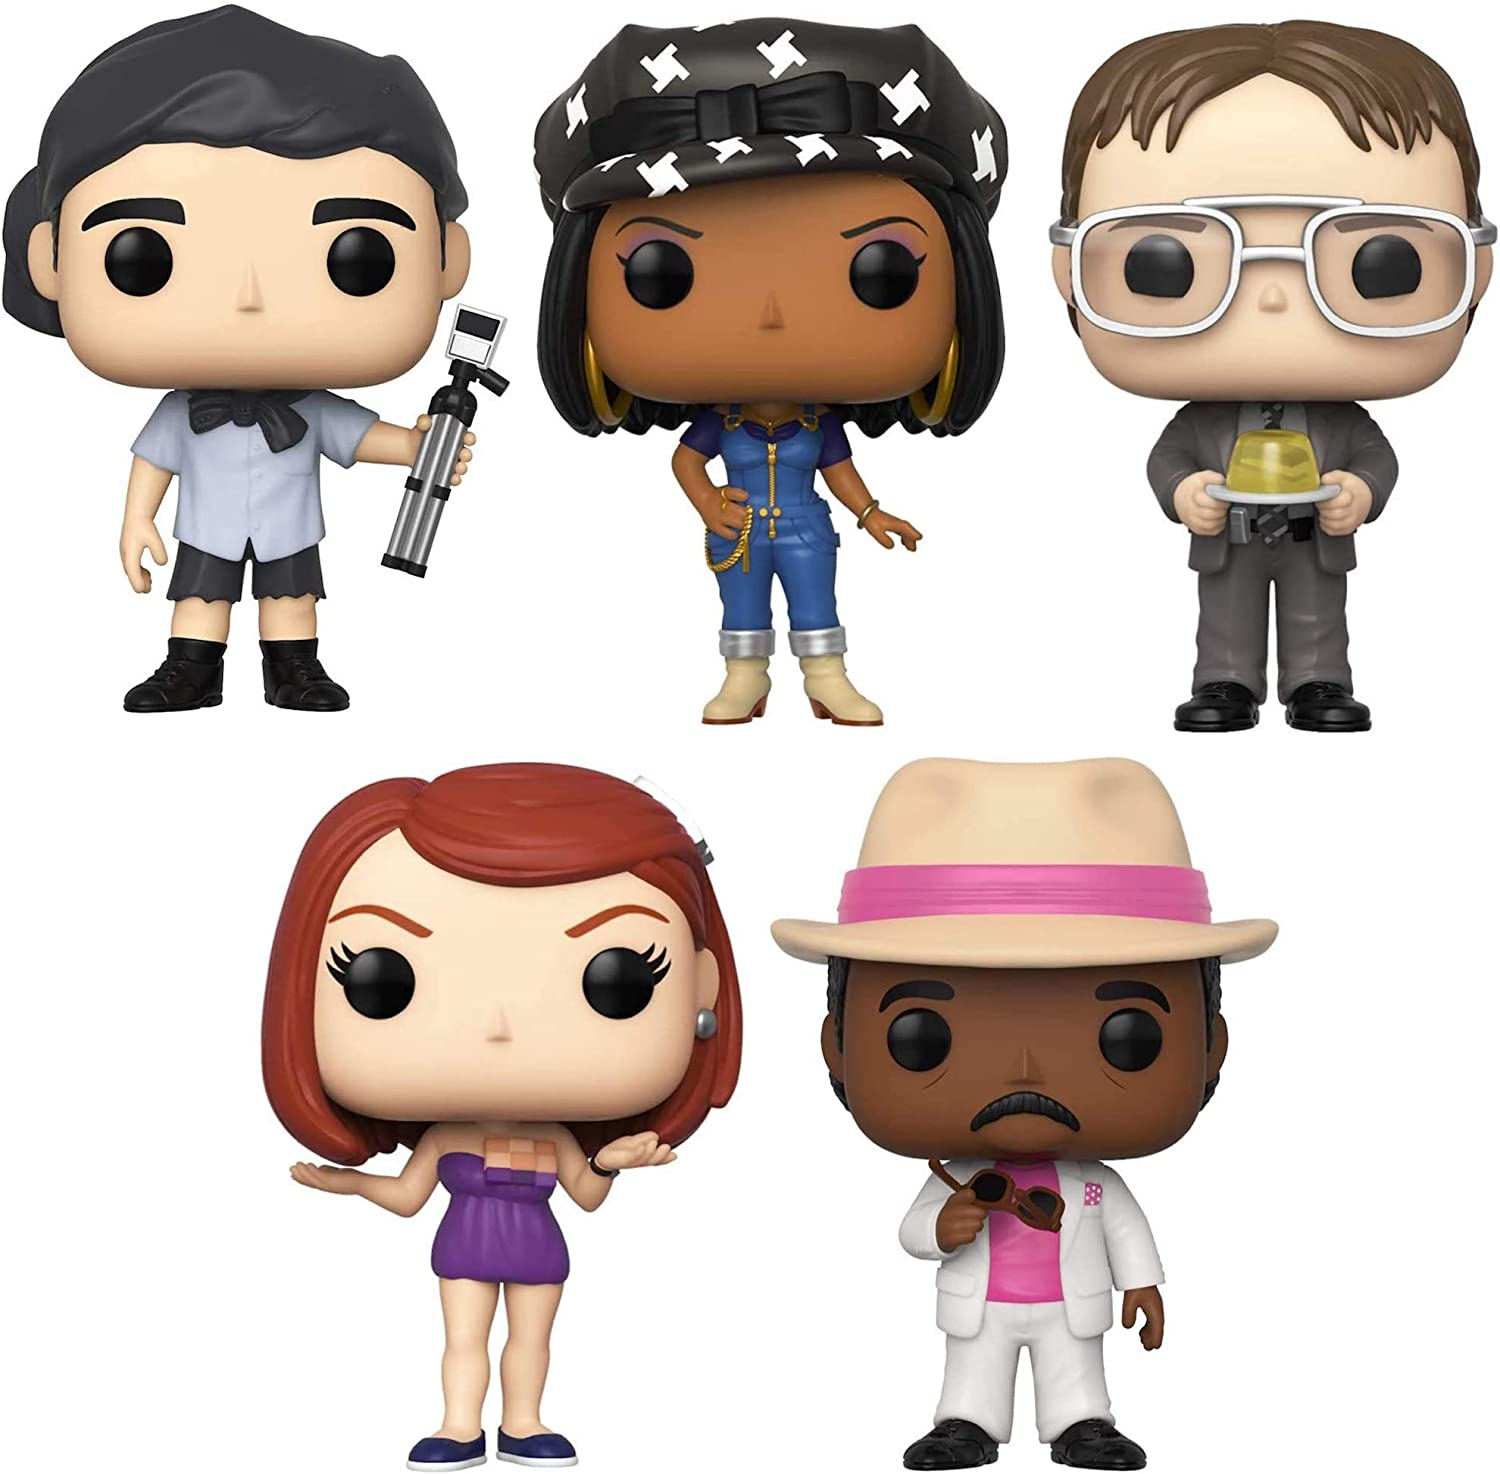 Funko Pop! TV: The Office - Michael As Survivor, Casual Friday Kelly, Dwight with Gelatin Stapler, Casual Friday Meredith and Florida Stanley - Set of 5 Figures